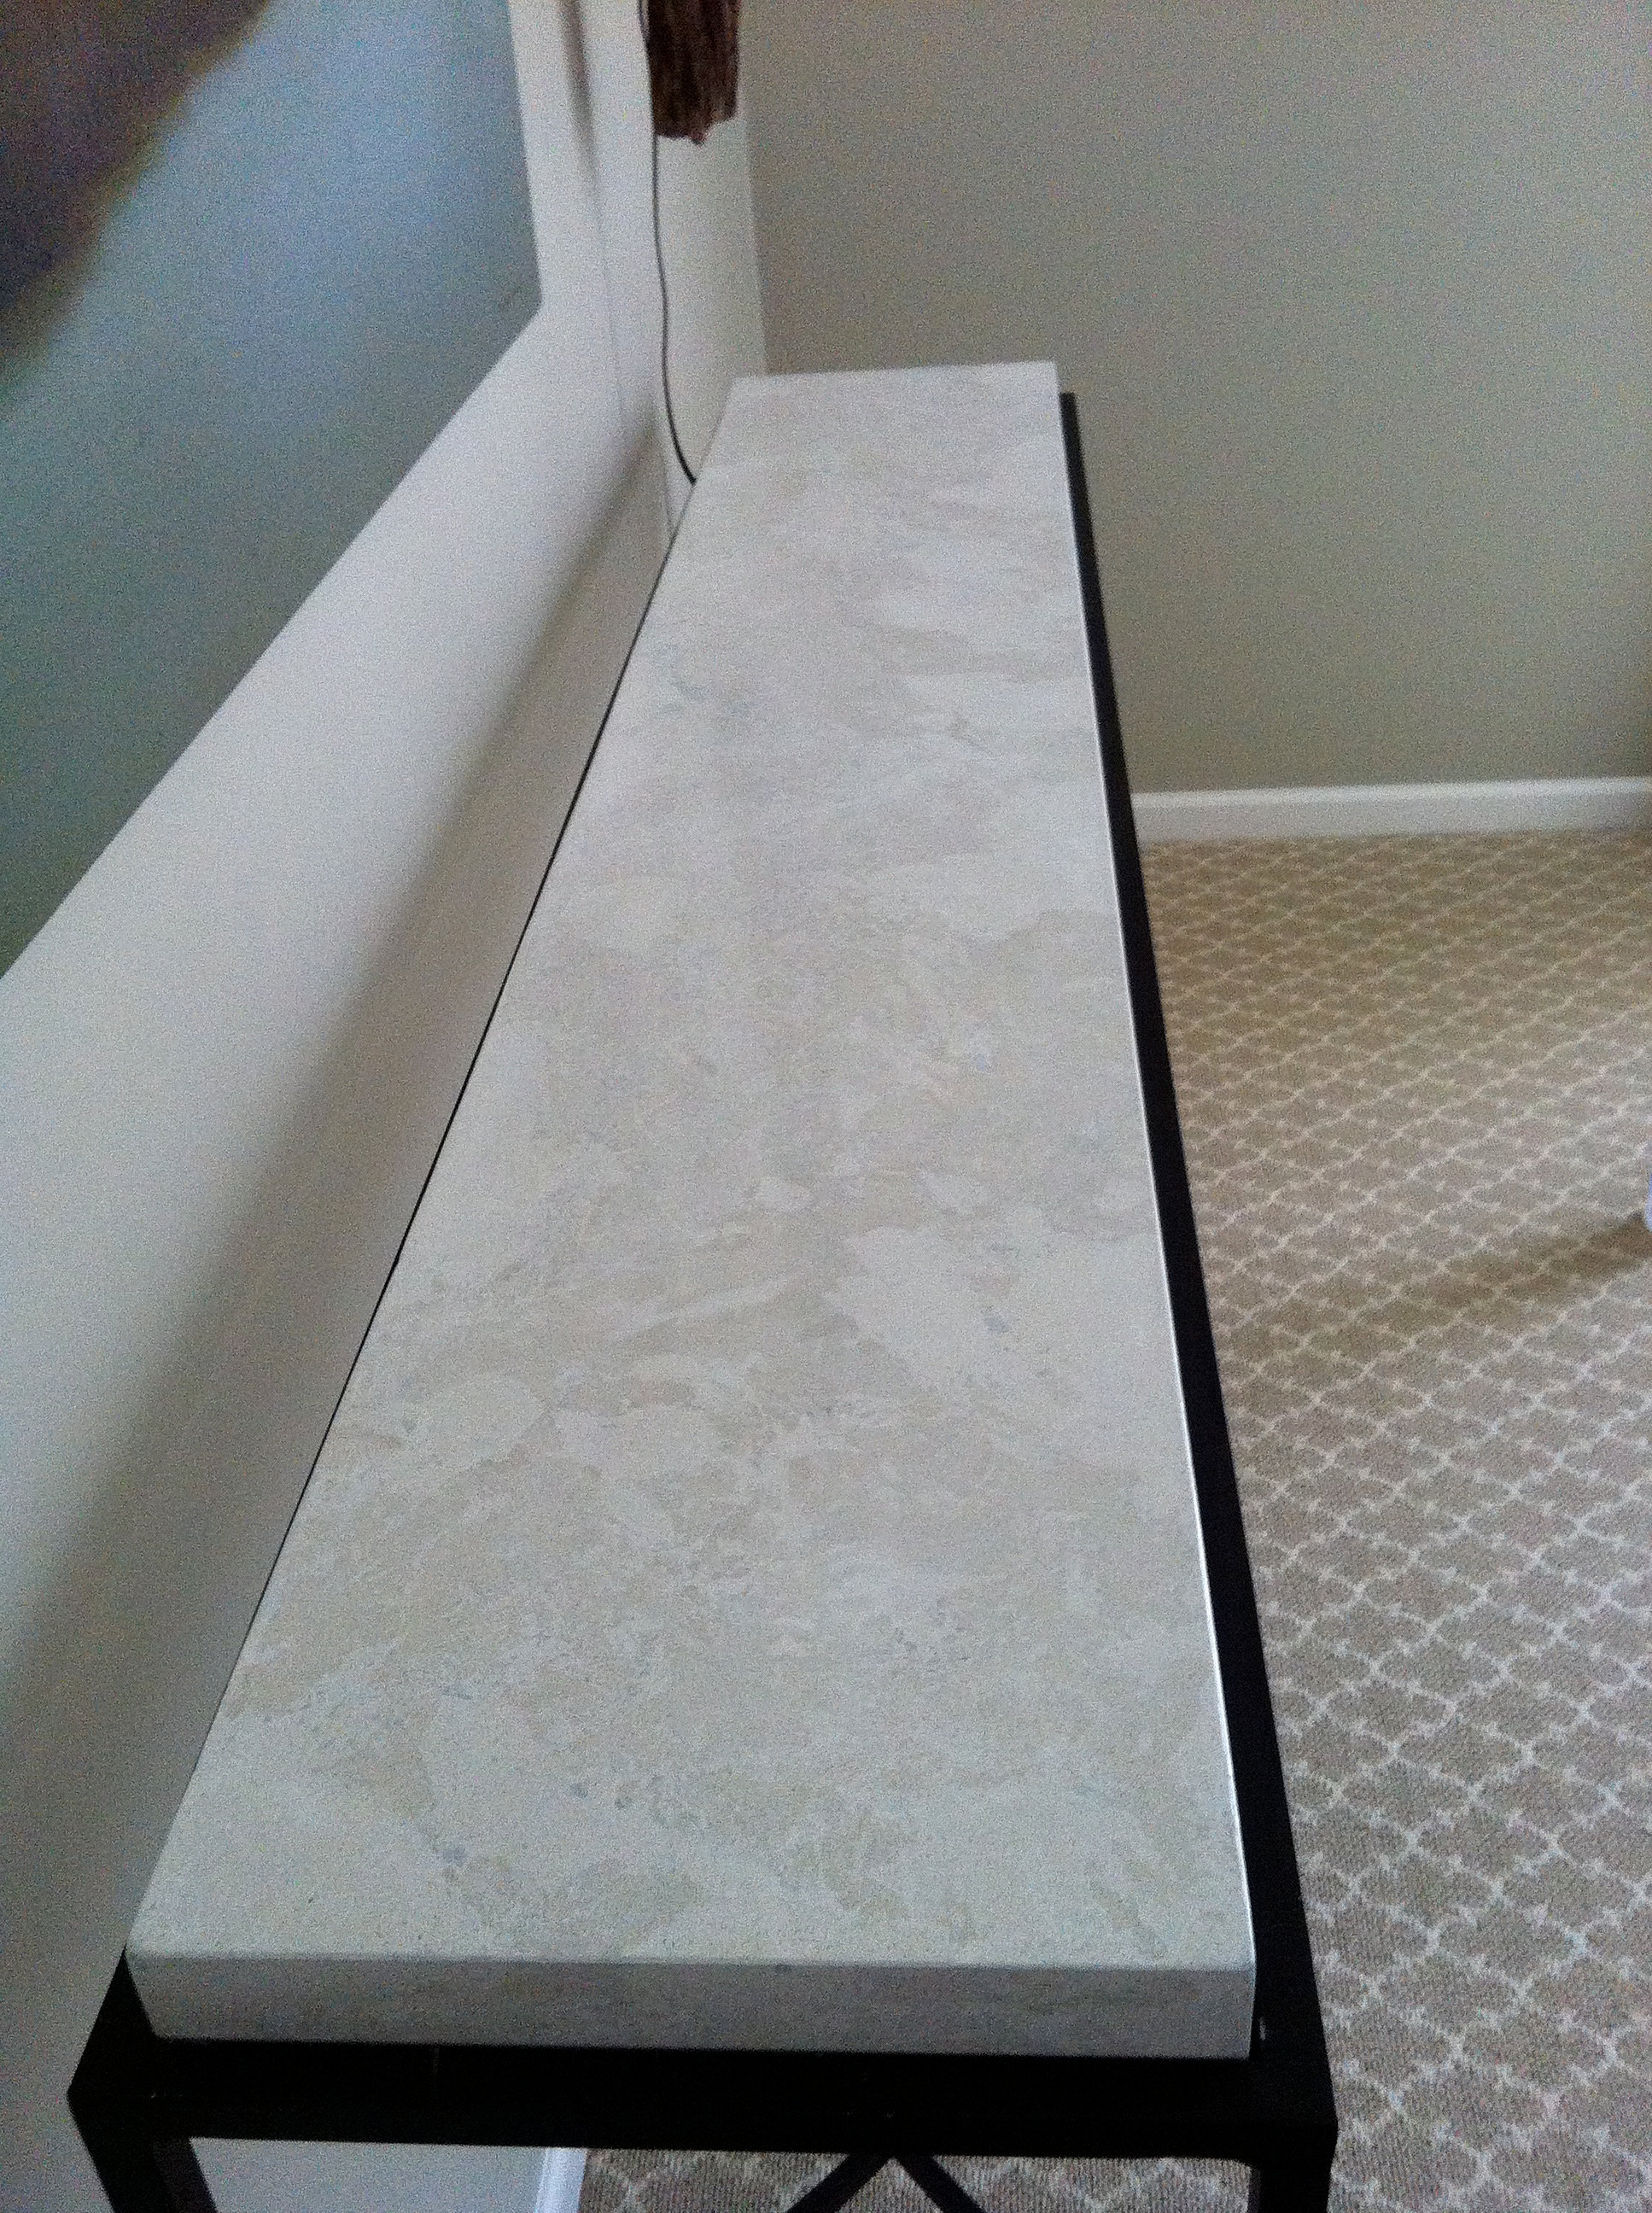 Concrete Countertops Atlanta| Concrete sinks| Burco Surface and